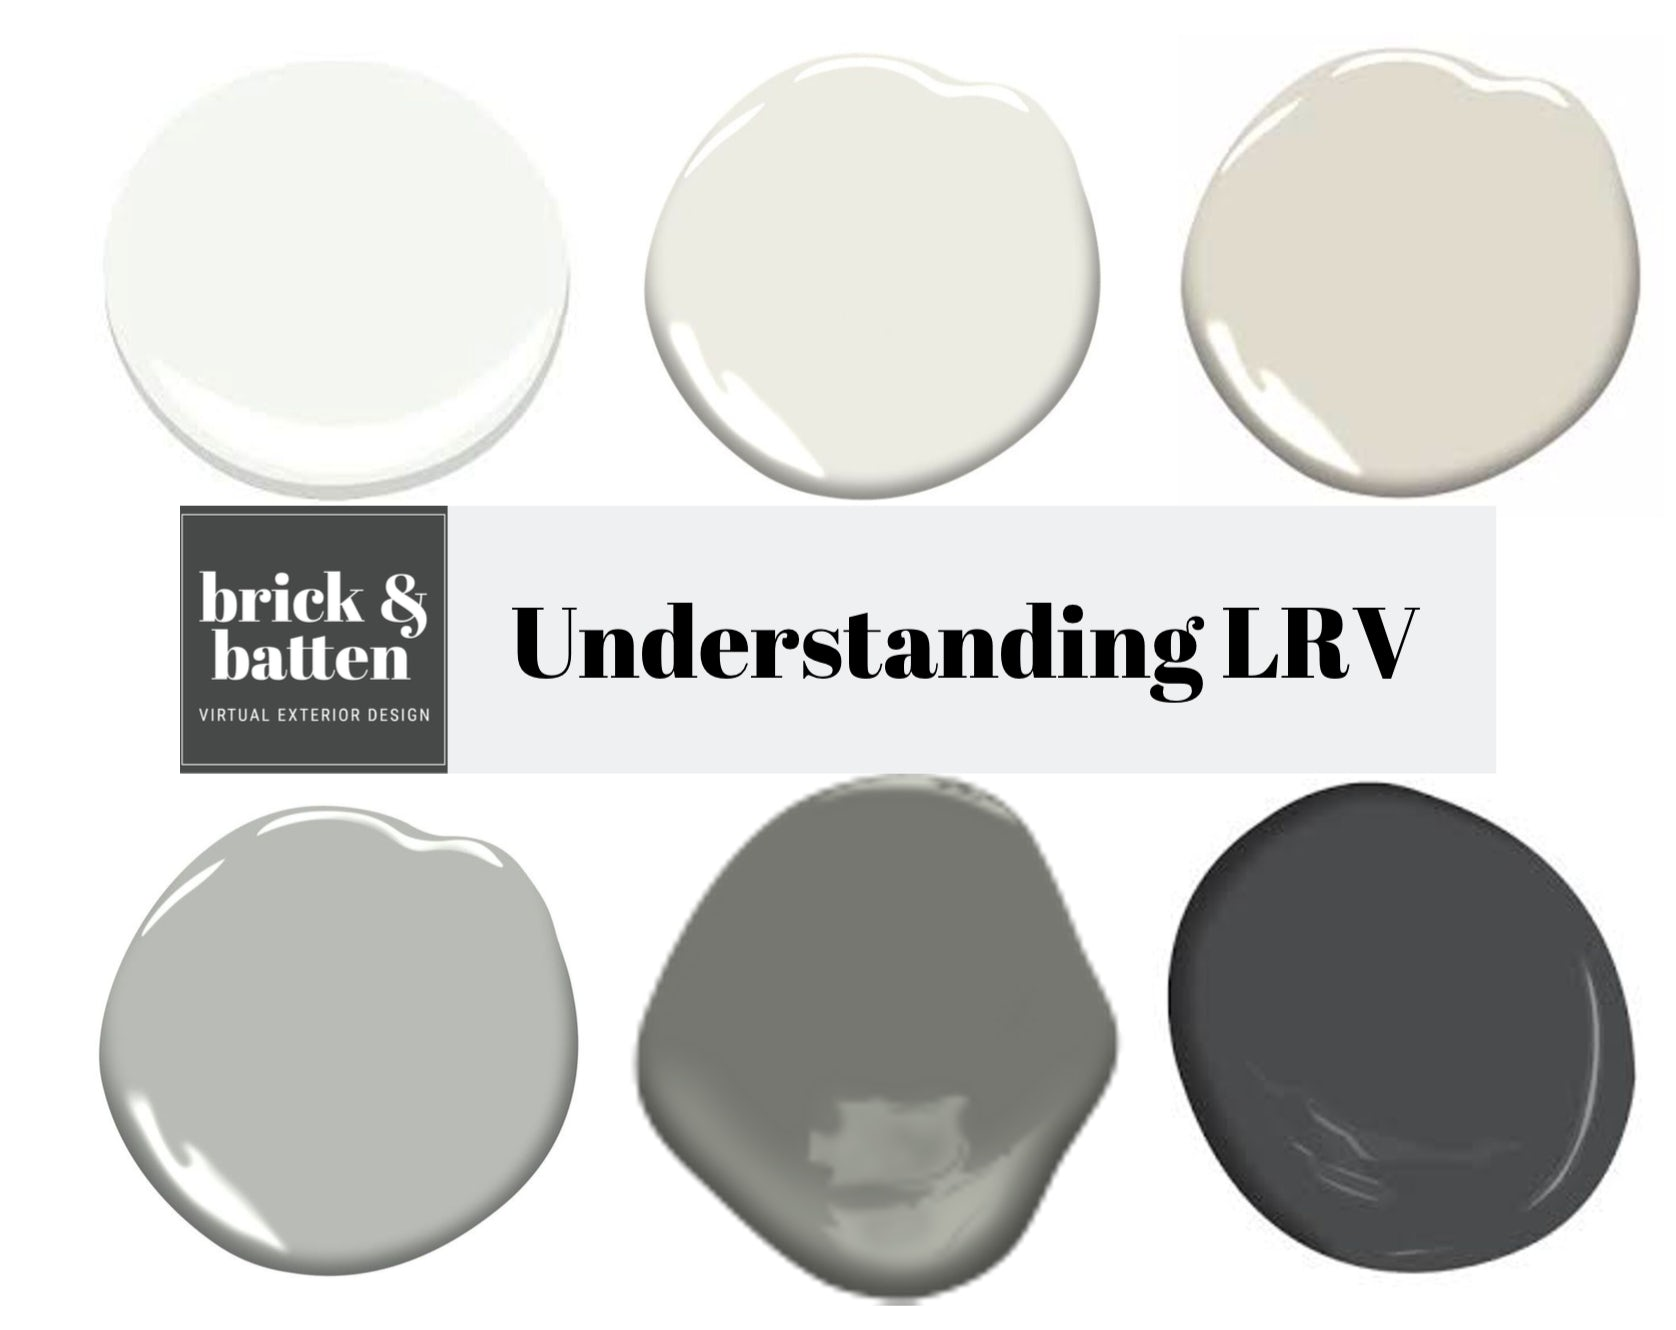 Understanding LRV graphic with different shades in a gray color family, from light to dark, pictured